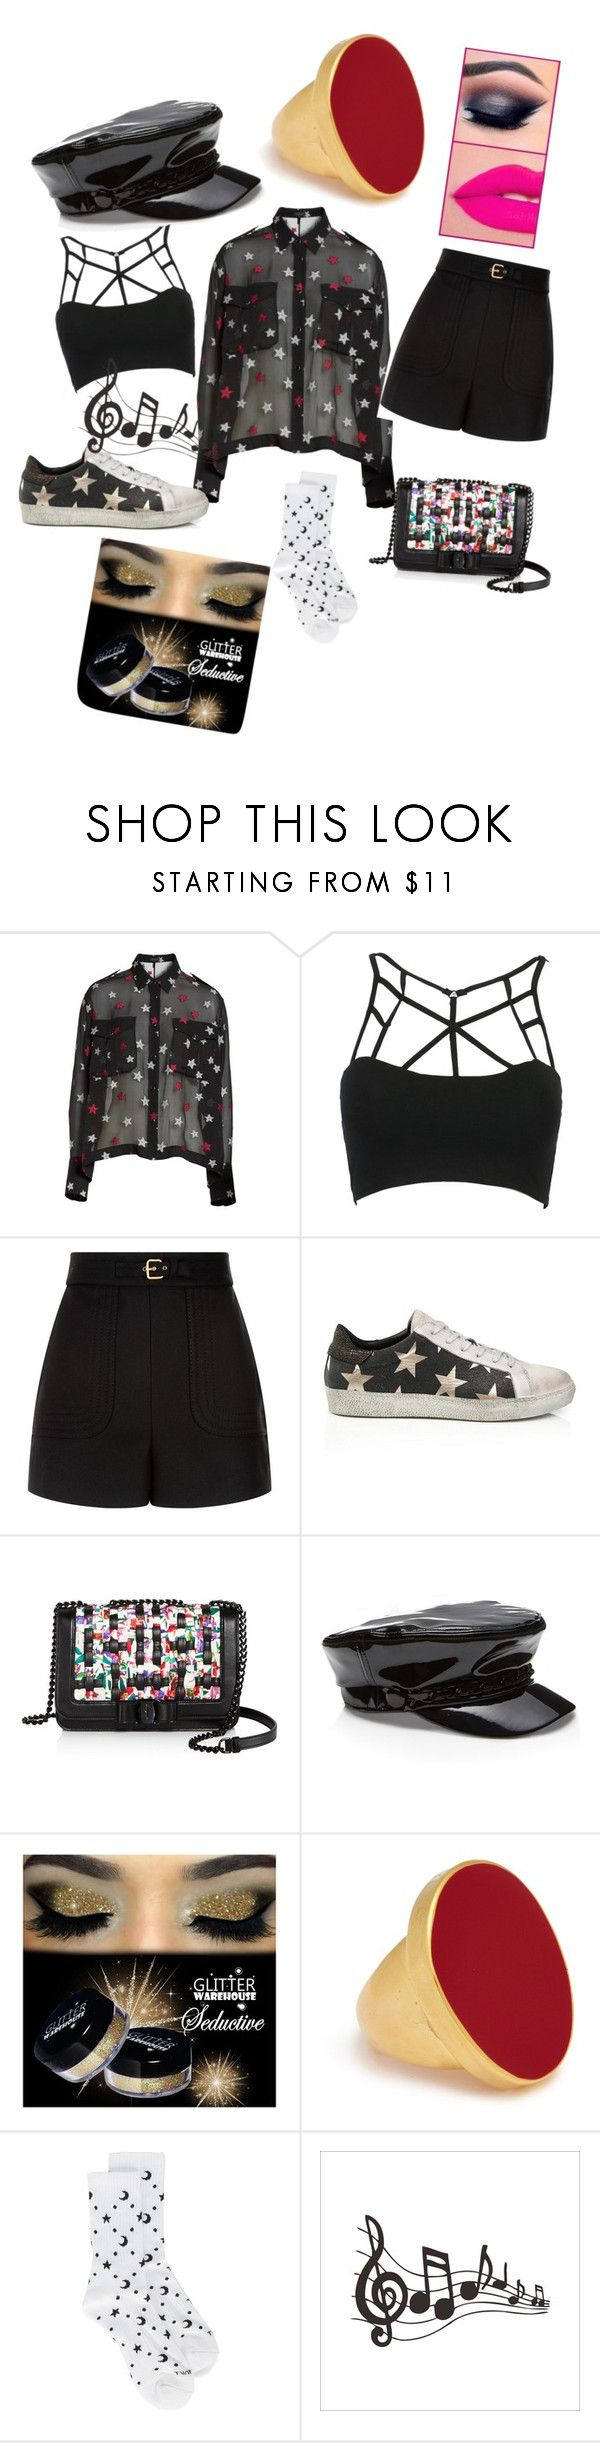 """karaoke last night"" by brittklein ❤ liked on Polyvore featuring rag & bone, WithChic, RED Valentino, Salvatore Ferragamo, Kenneth Jay Lane and Mother"